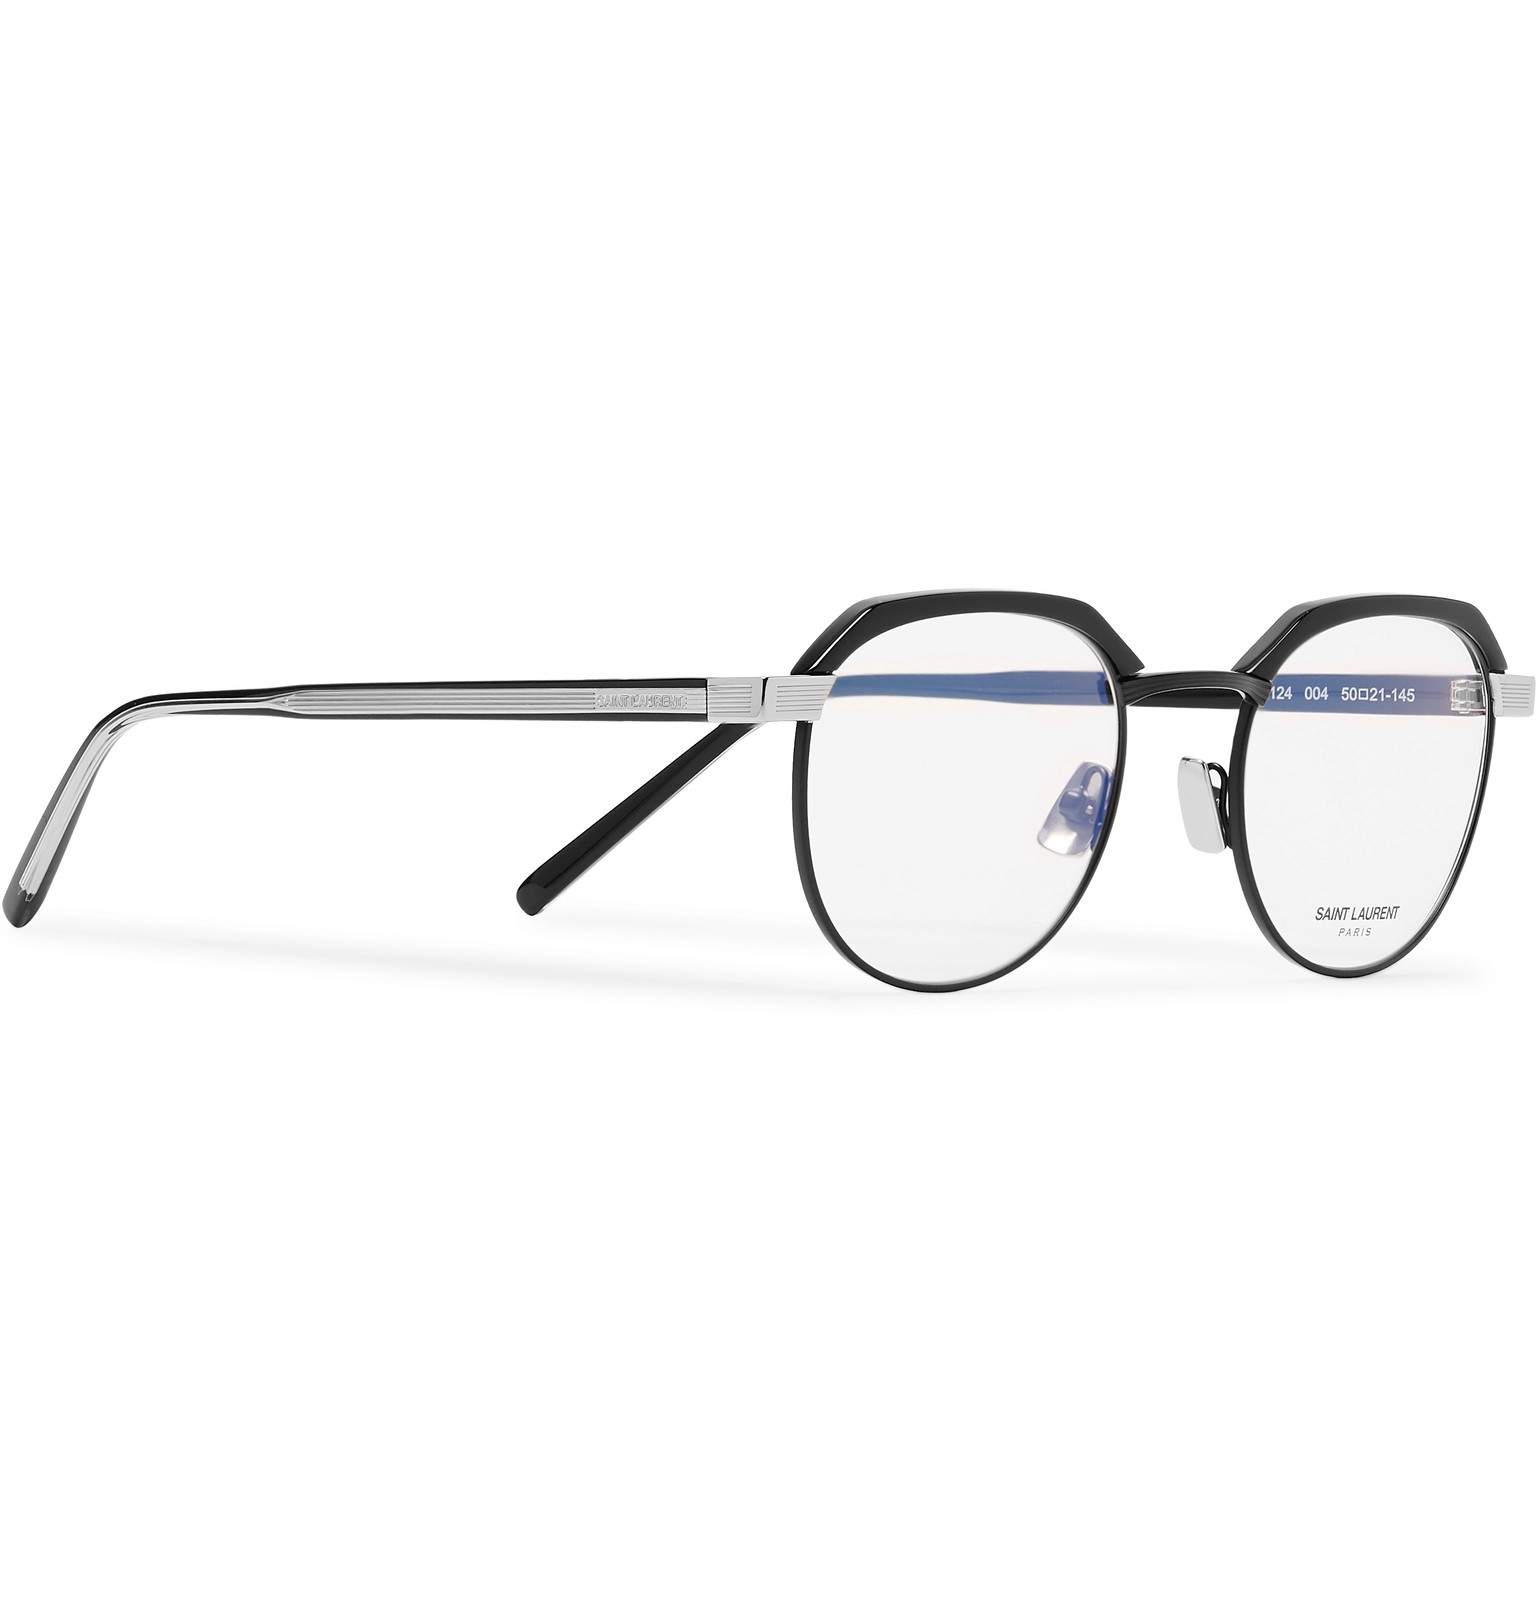 2918e34ed1 Saint Laurent - Round-Frame Acetate and Silver-Tone Optical Glasses